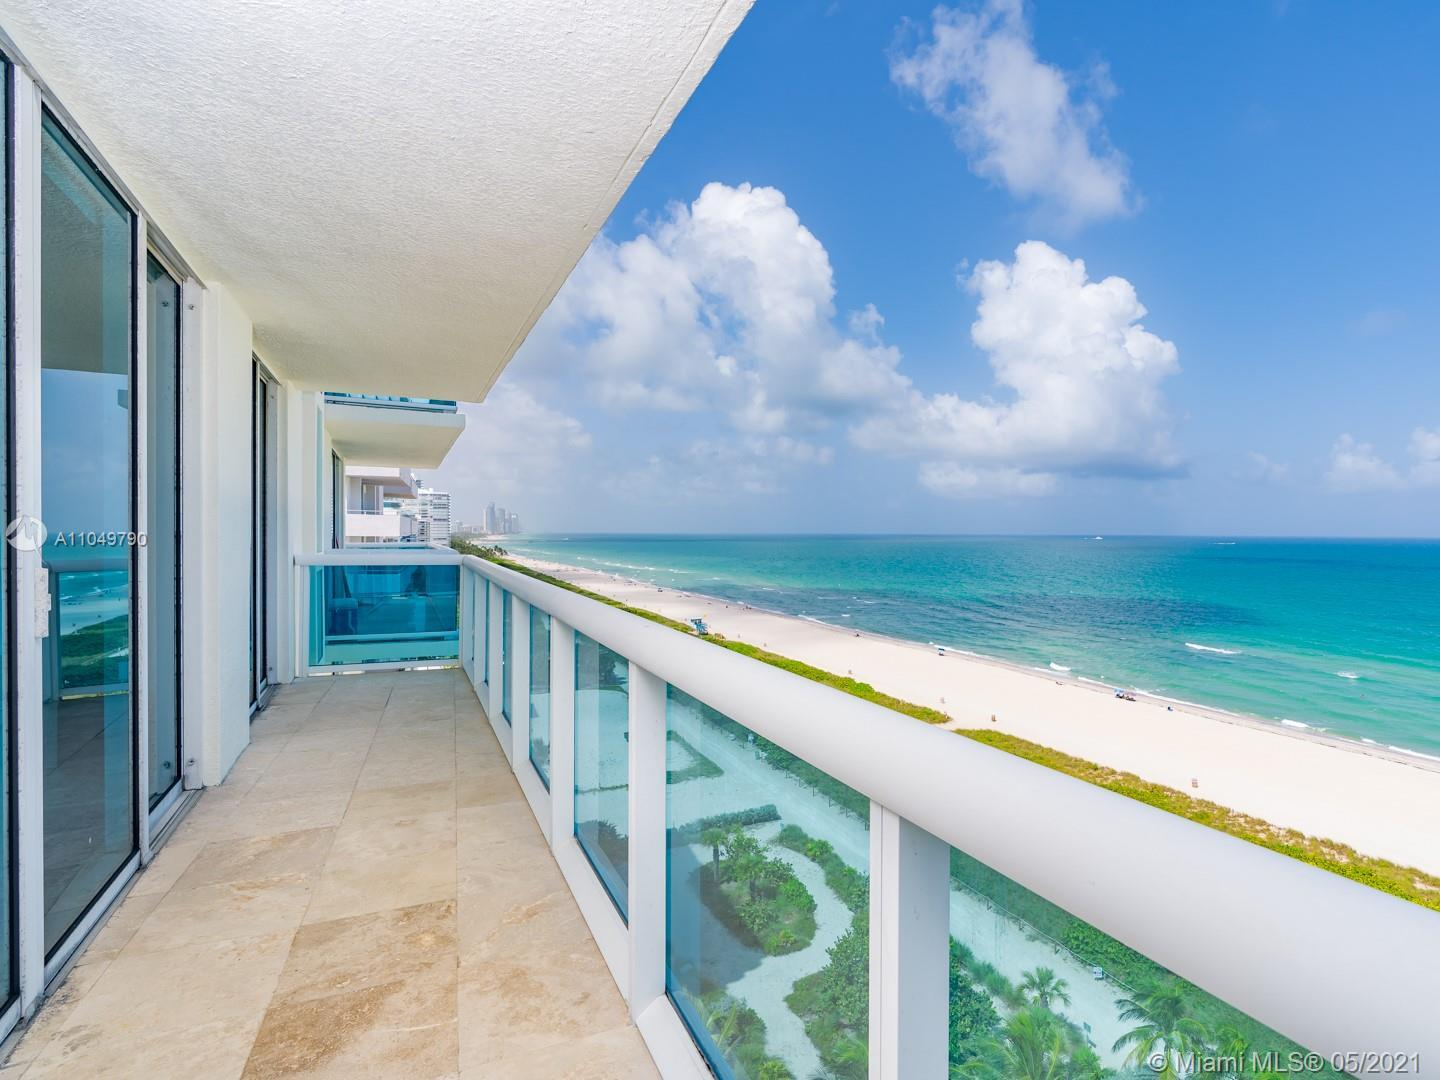 Spectacular DIRECT OCEANFRONT views from the most desirable unit in the building. Newer construction